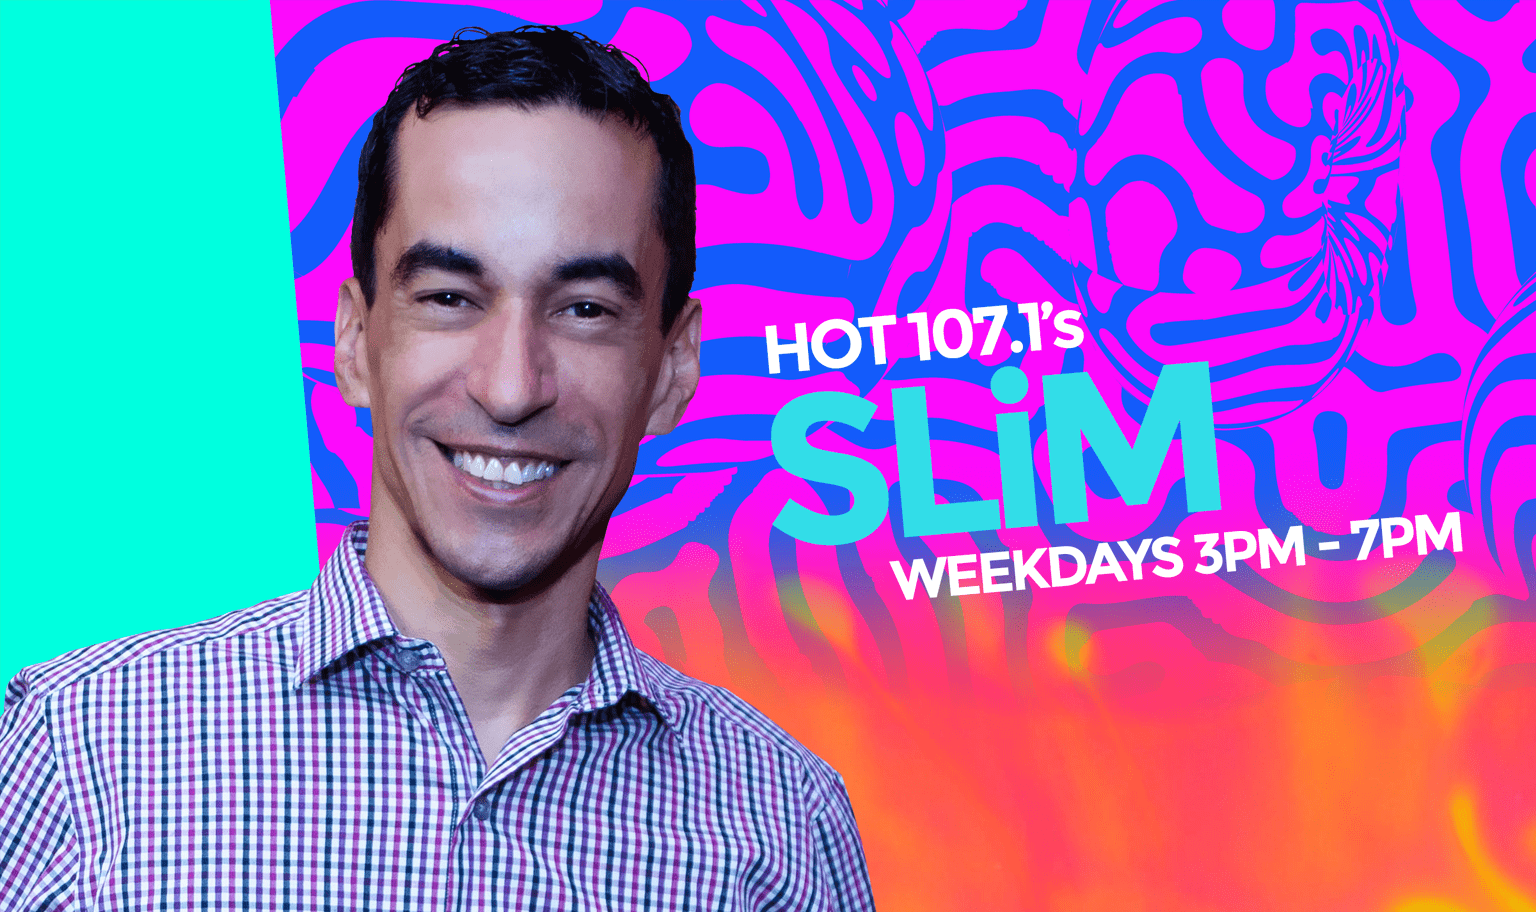 Slim Afternoons Hot 107.1